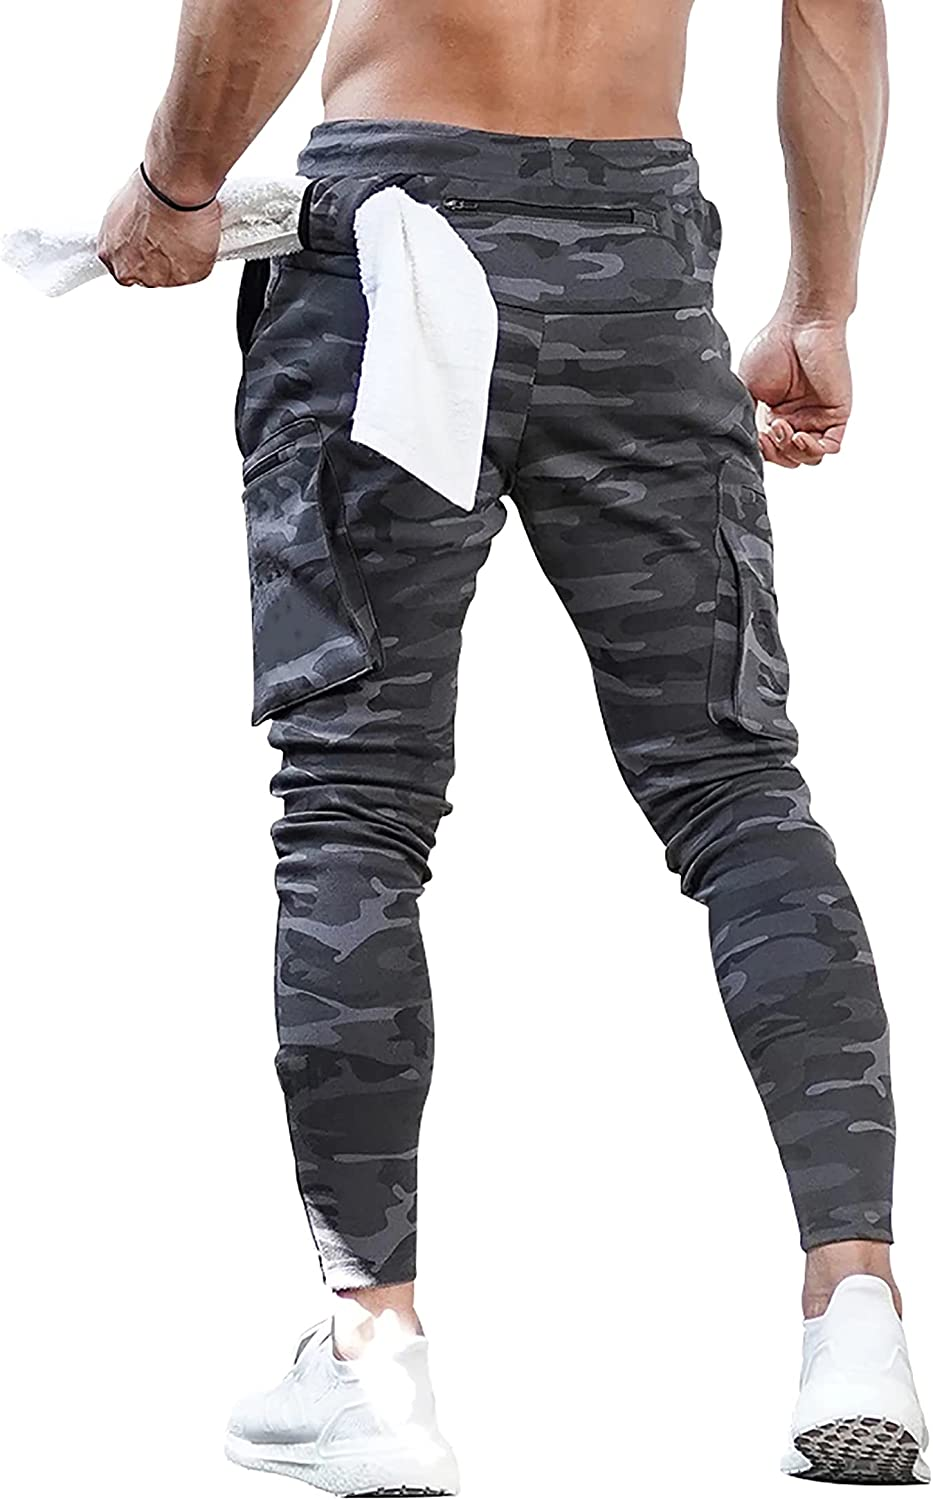 MECH-ENG Men's Active Tack Jogger Fitness Pants Tapered Sweatpan Max 65% OFF ! Super beauty product restock quality top!